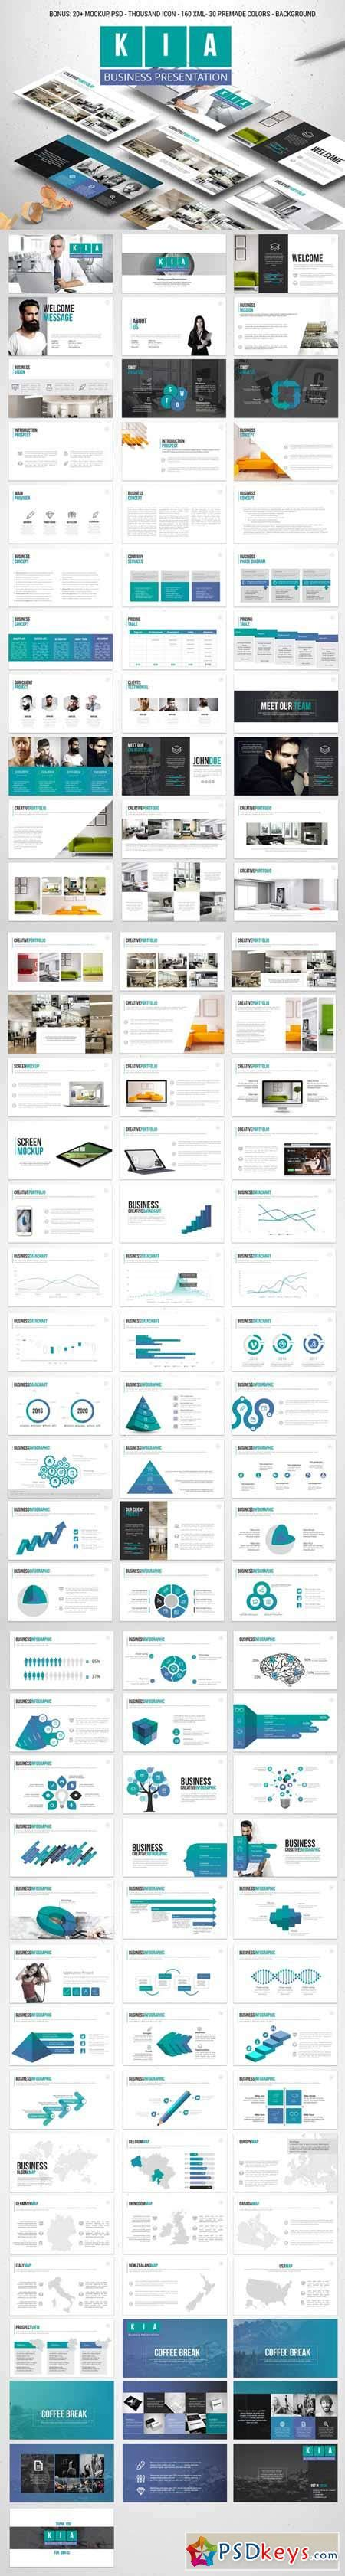 kia powerpoint template 585914 187 free download photoshop